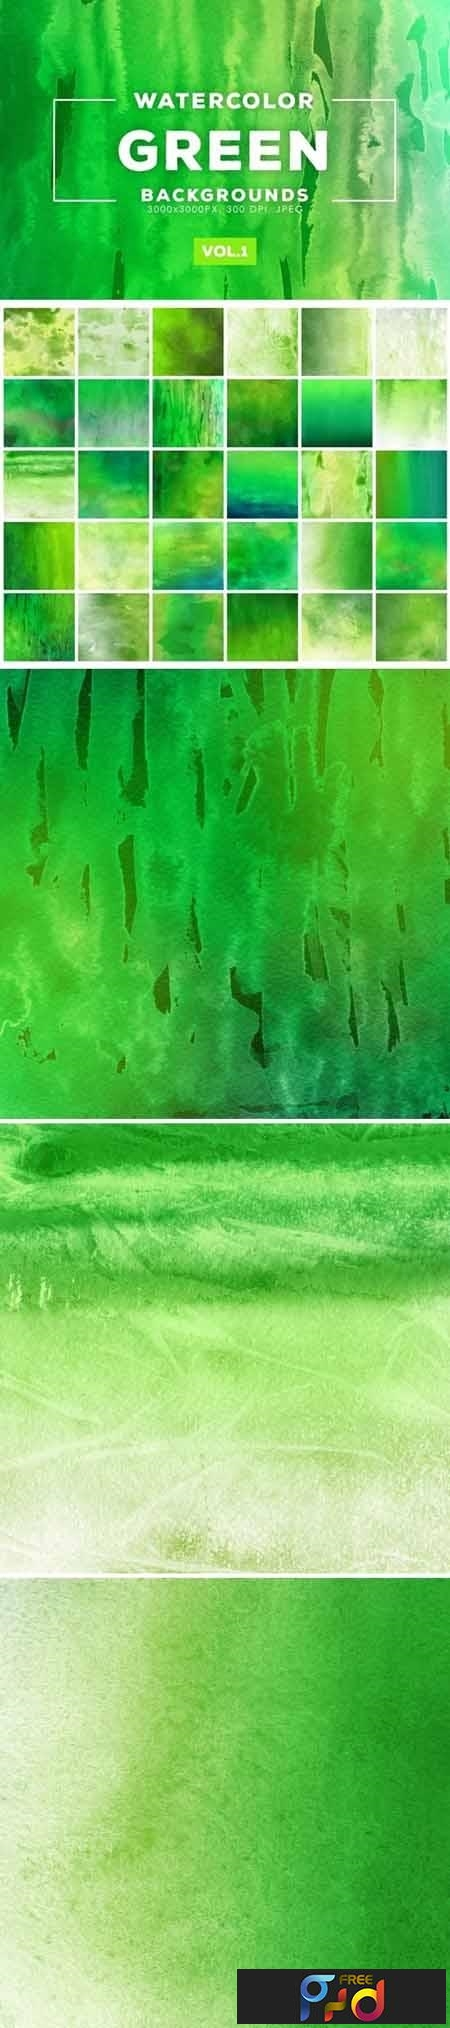 Green Watercolor Backgrounds Vol.1 1